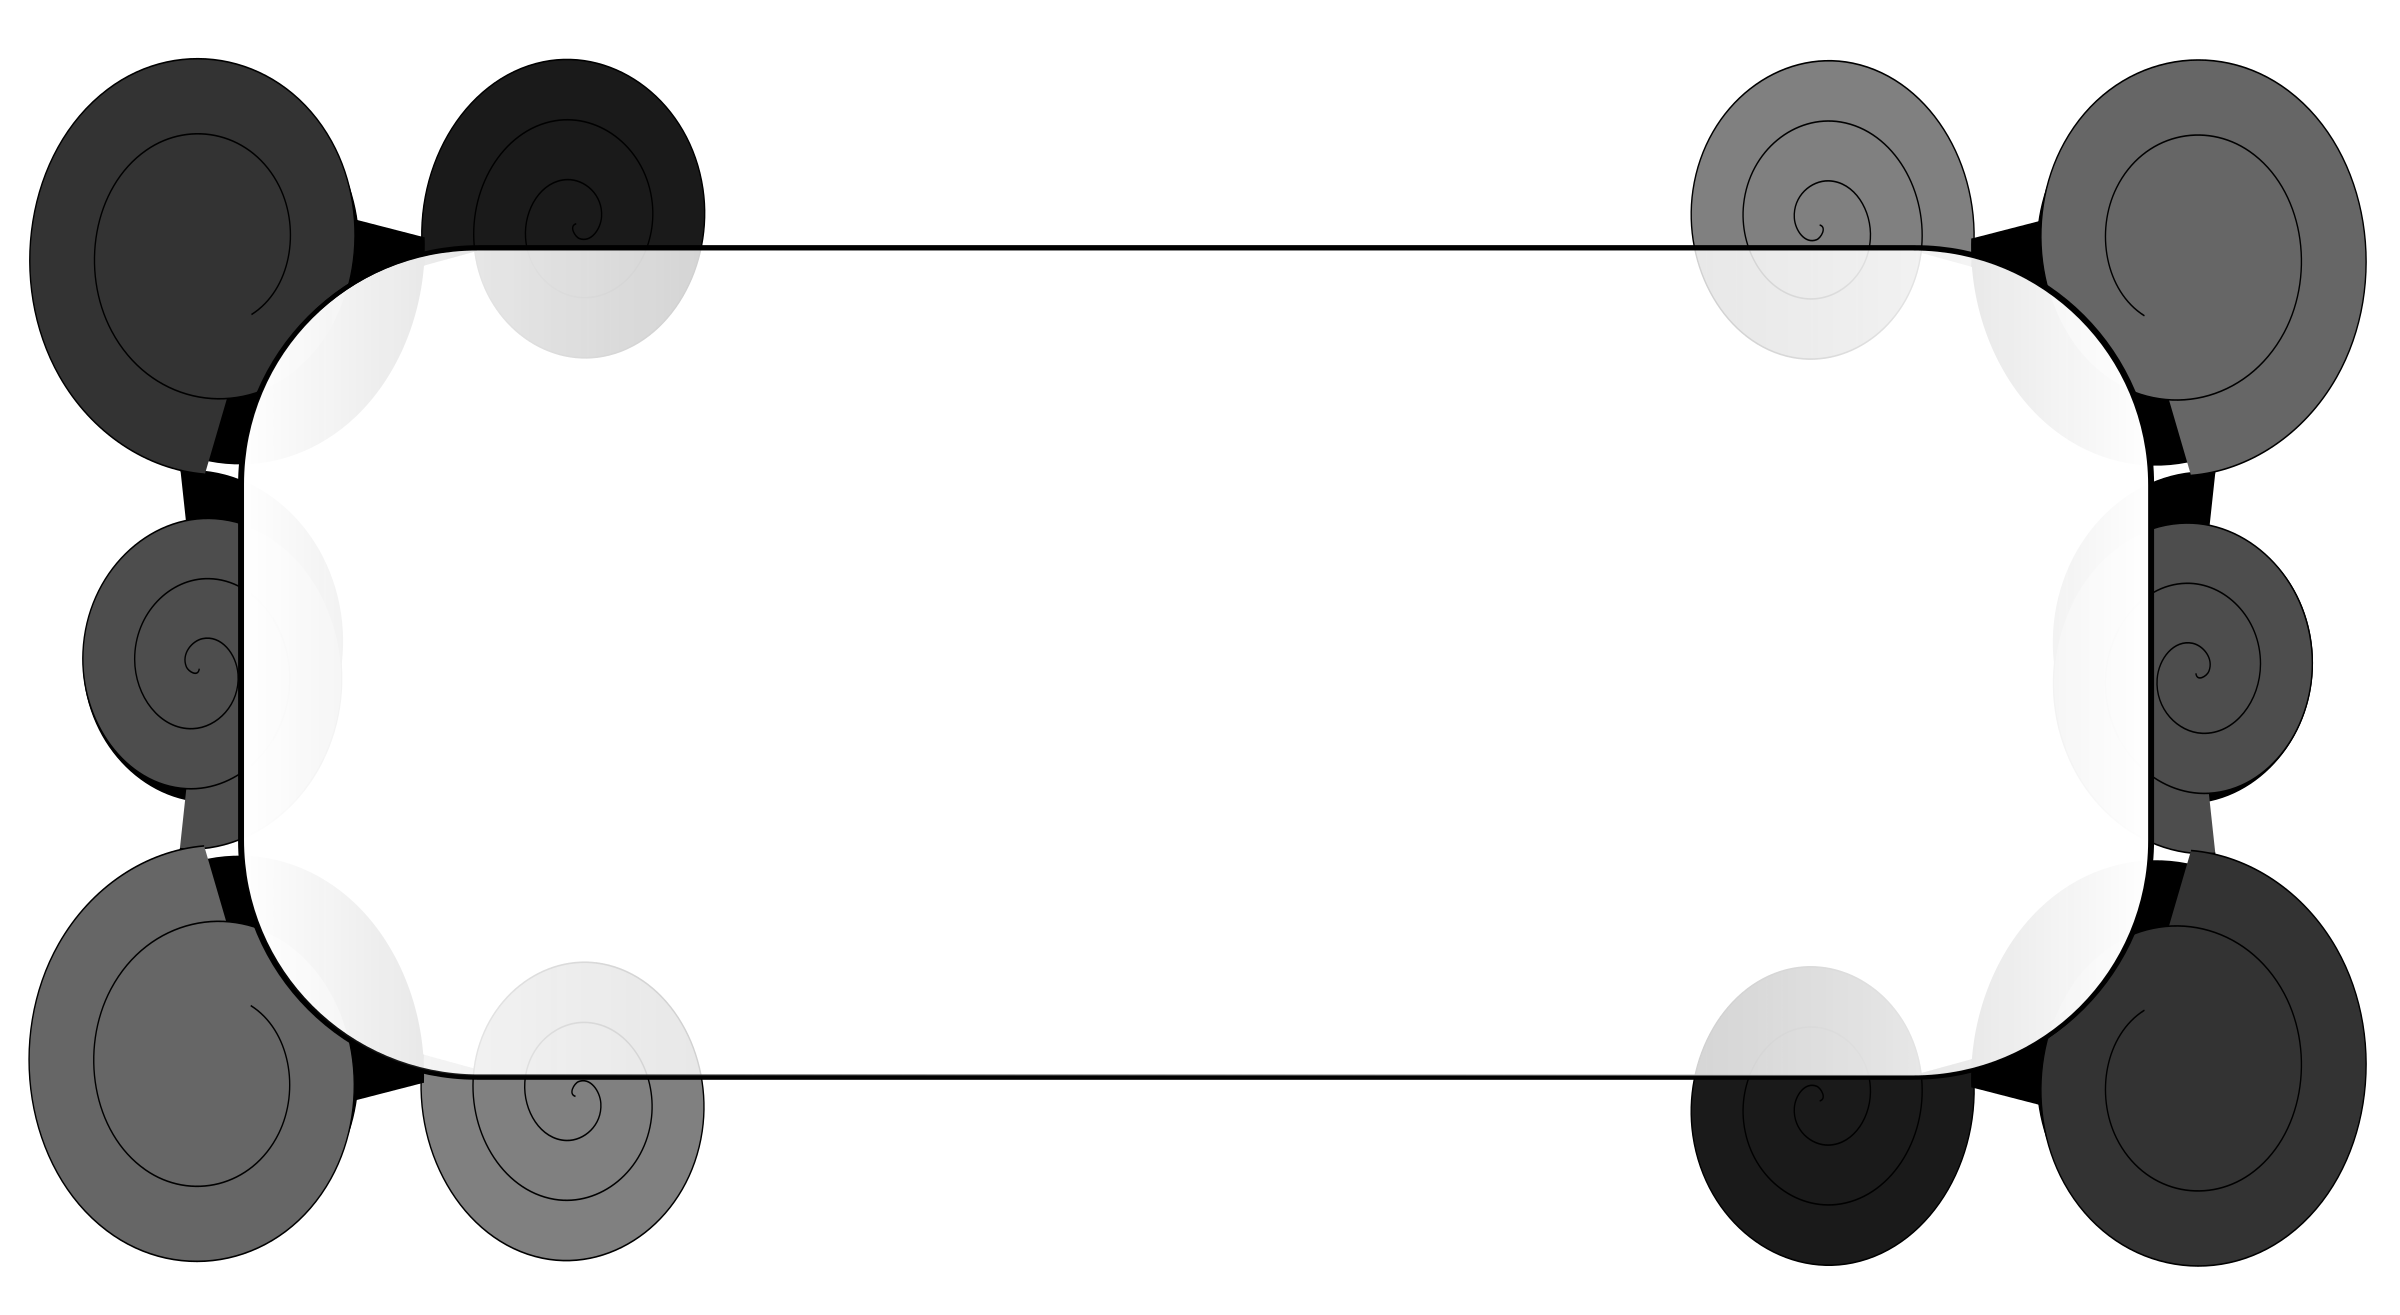 Decorative text box borders png. Transparent pictures free icons